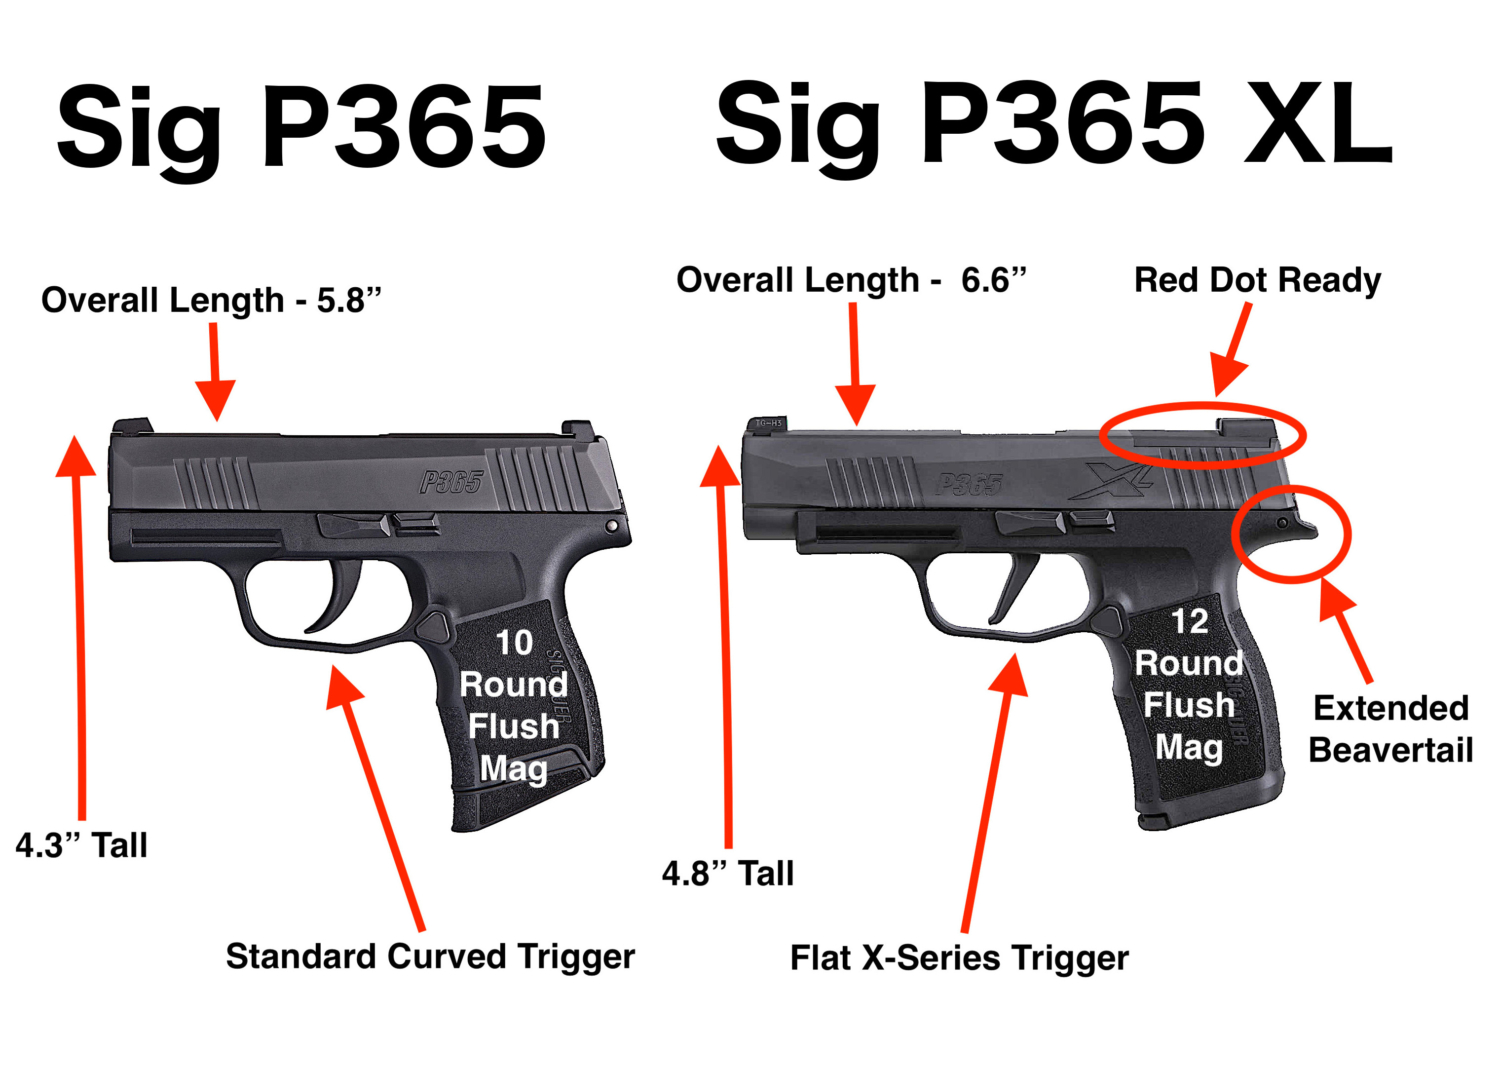 Differences between the Sig P365 and P365XL